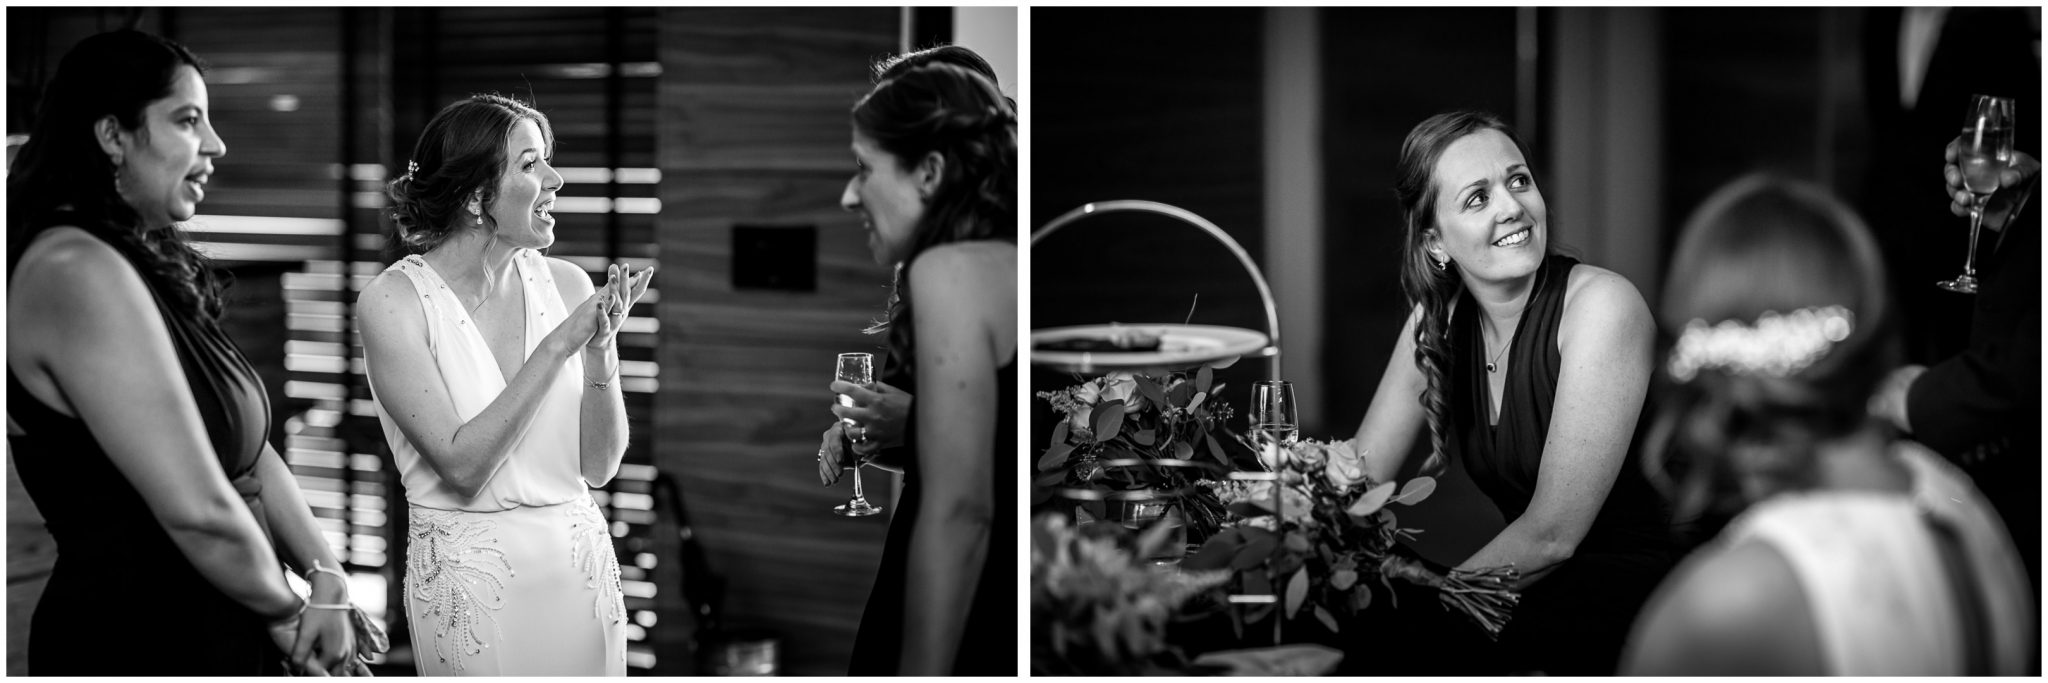 Black and white candid photography bride and bridesmaids at reception